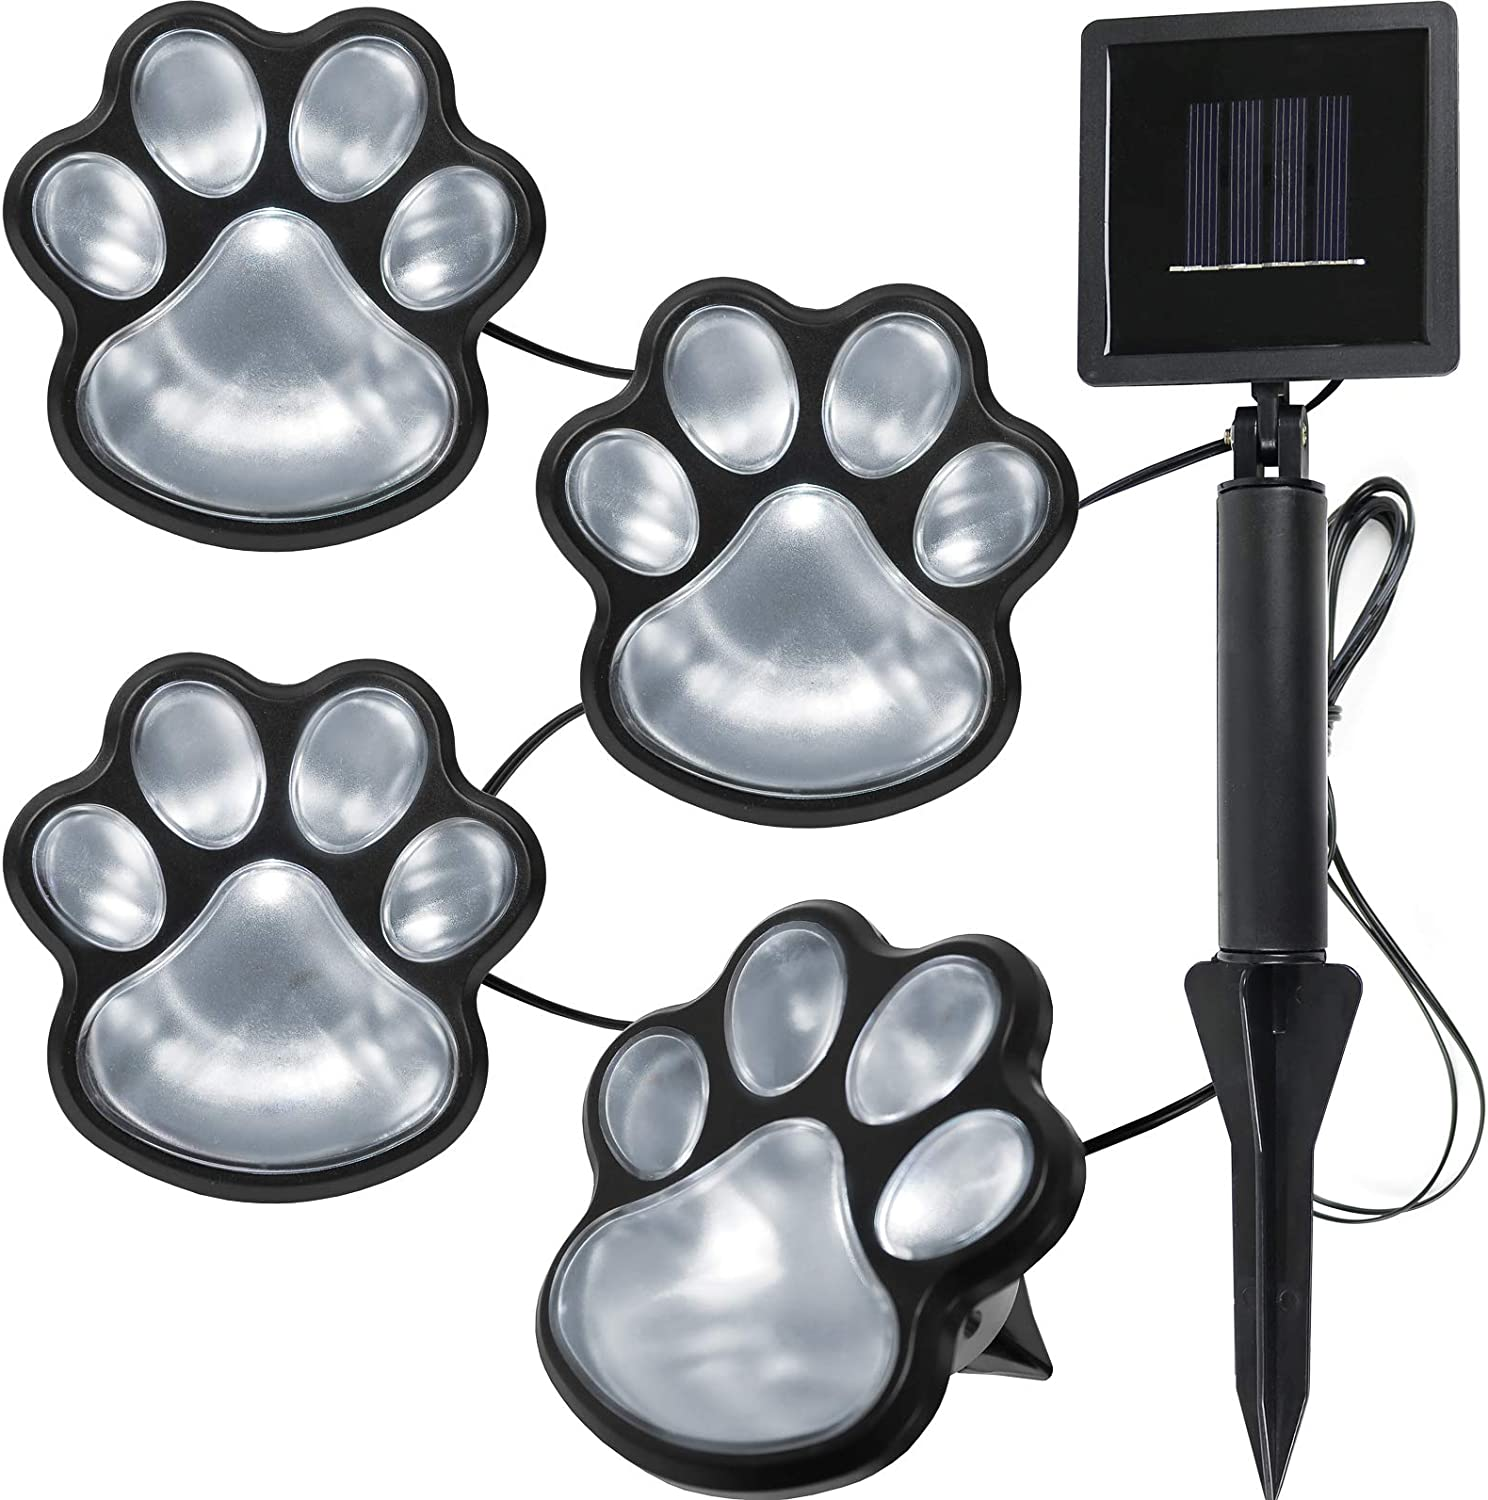 Paw Print Solar Lights Outdoor Garden Decor LED Yard Decoration (Cool White - Set of 4)